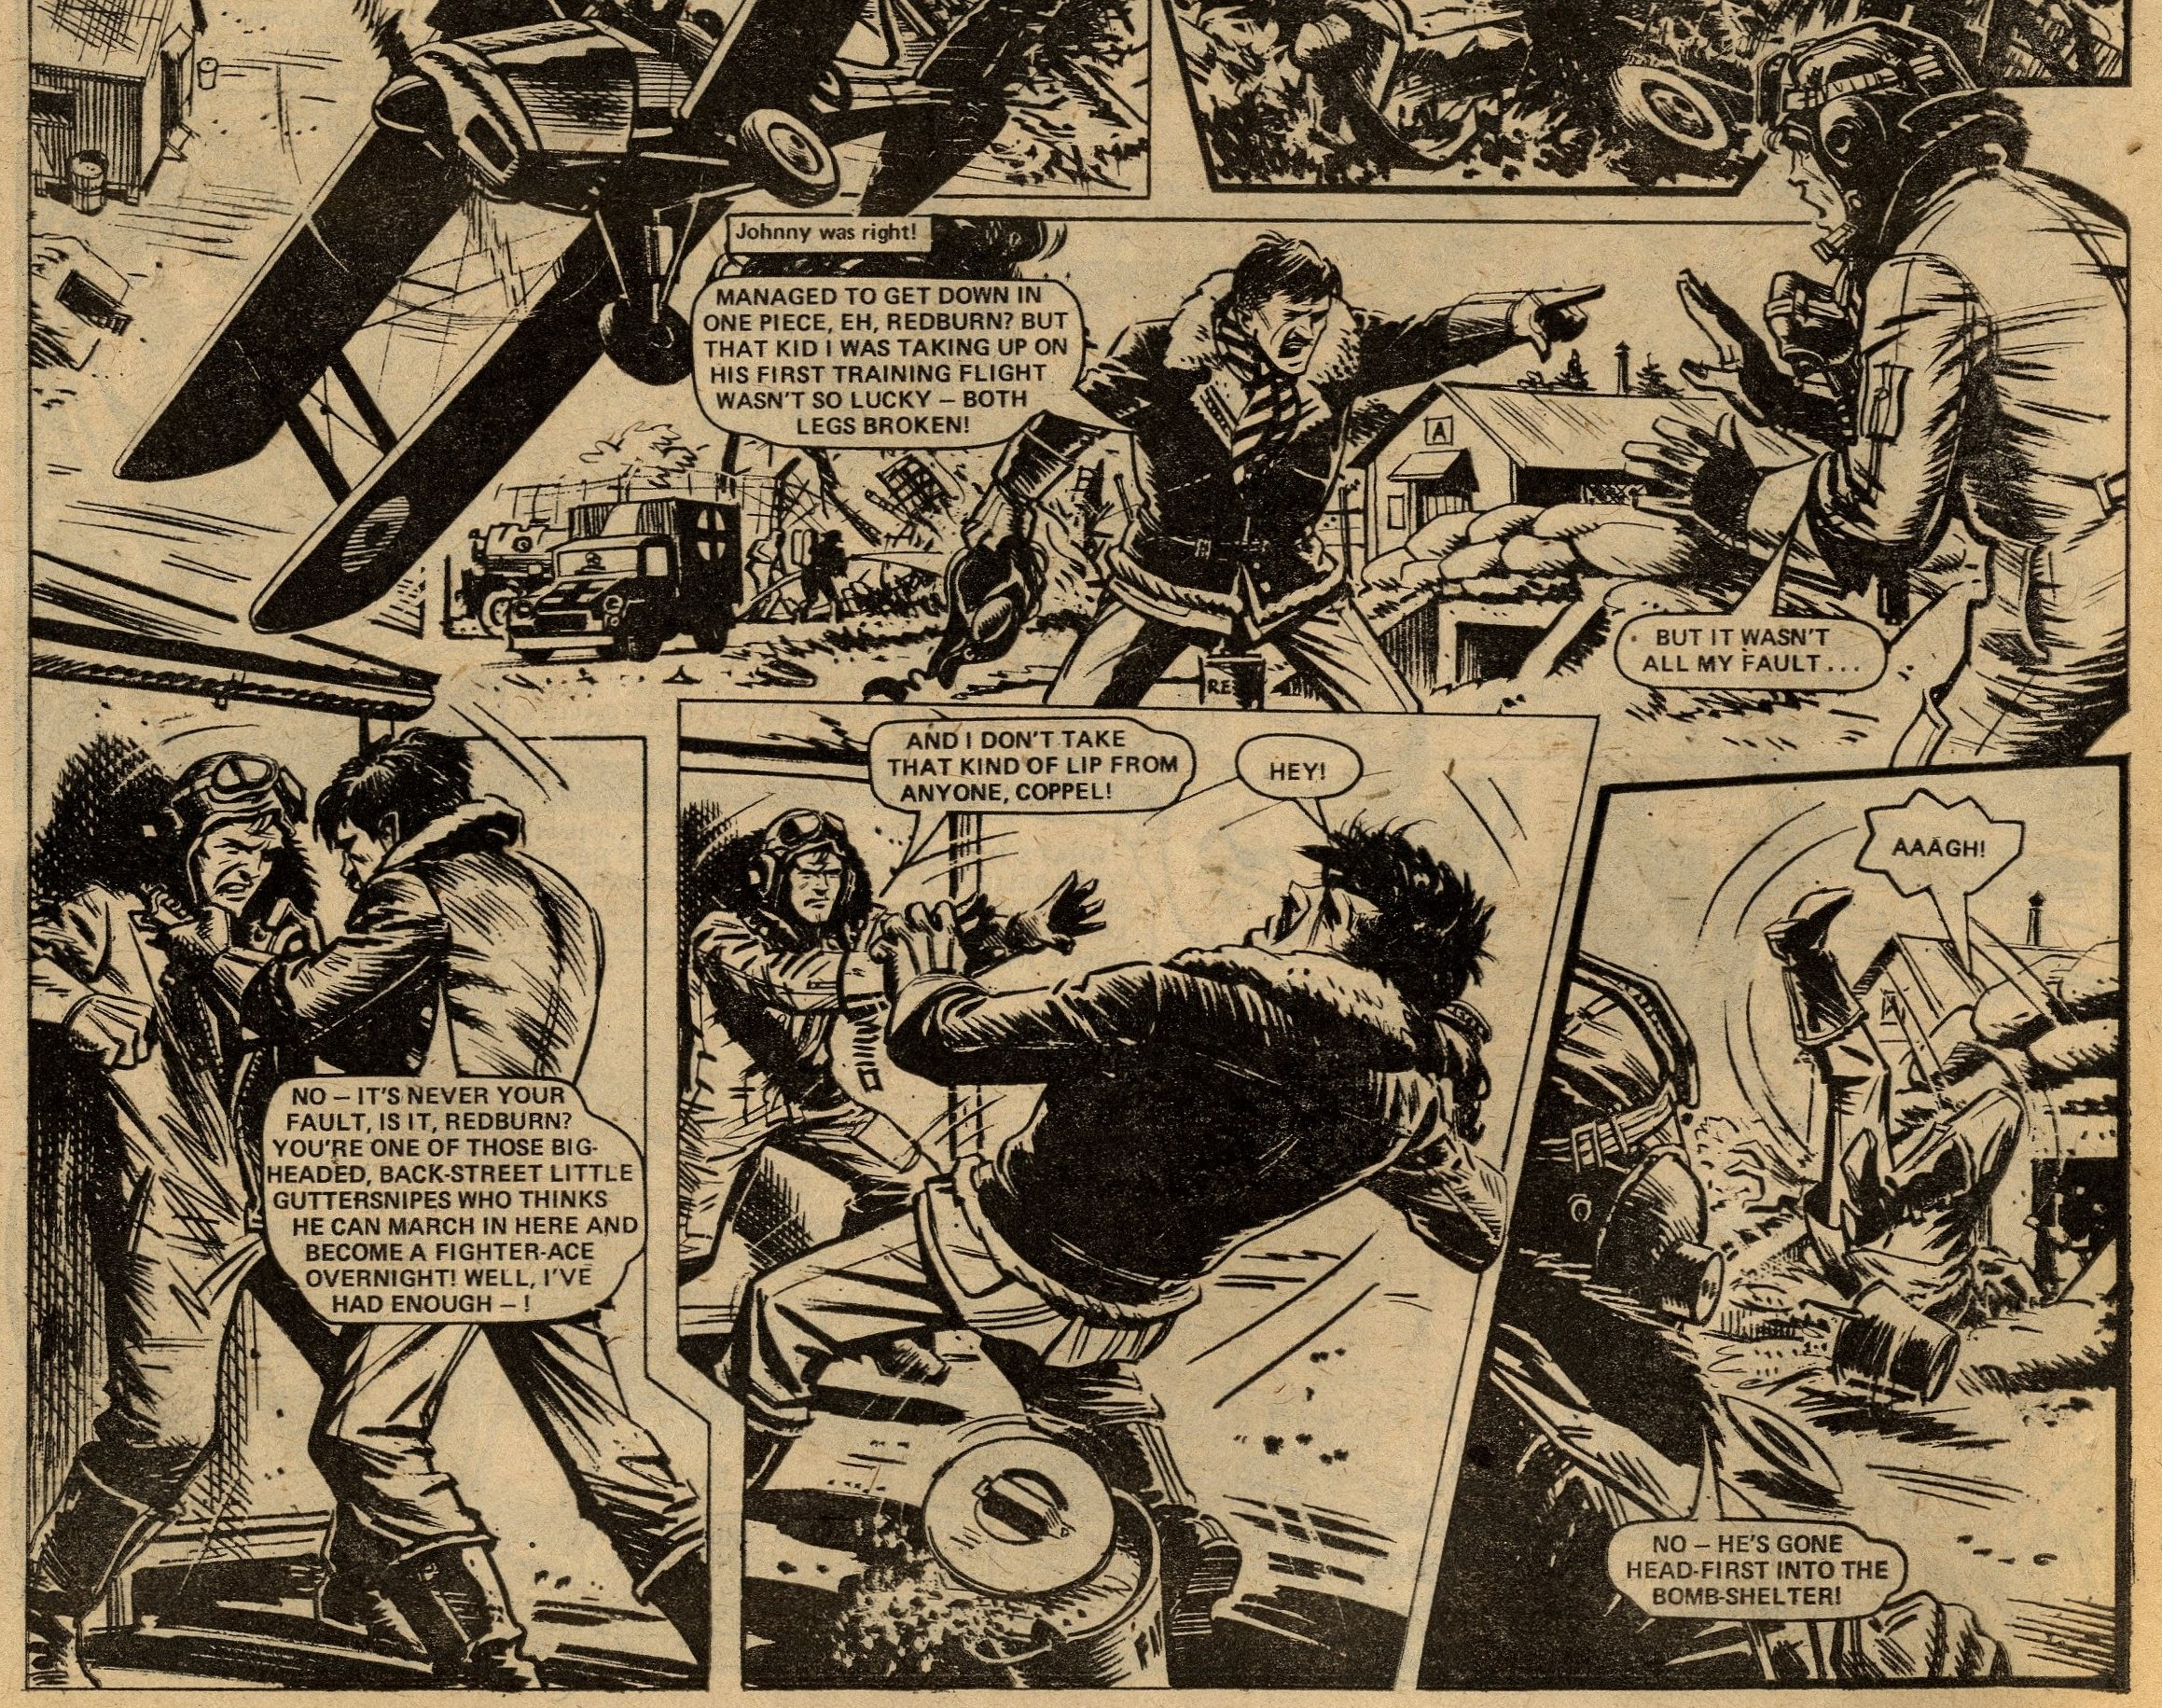 Johnny Red: Tom Tully (writer), Joe Colquhoun (artist)